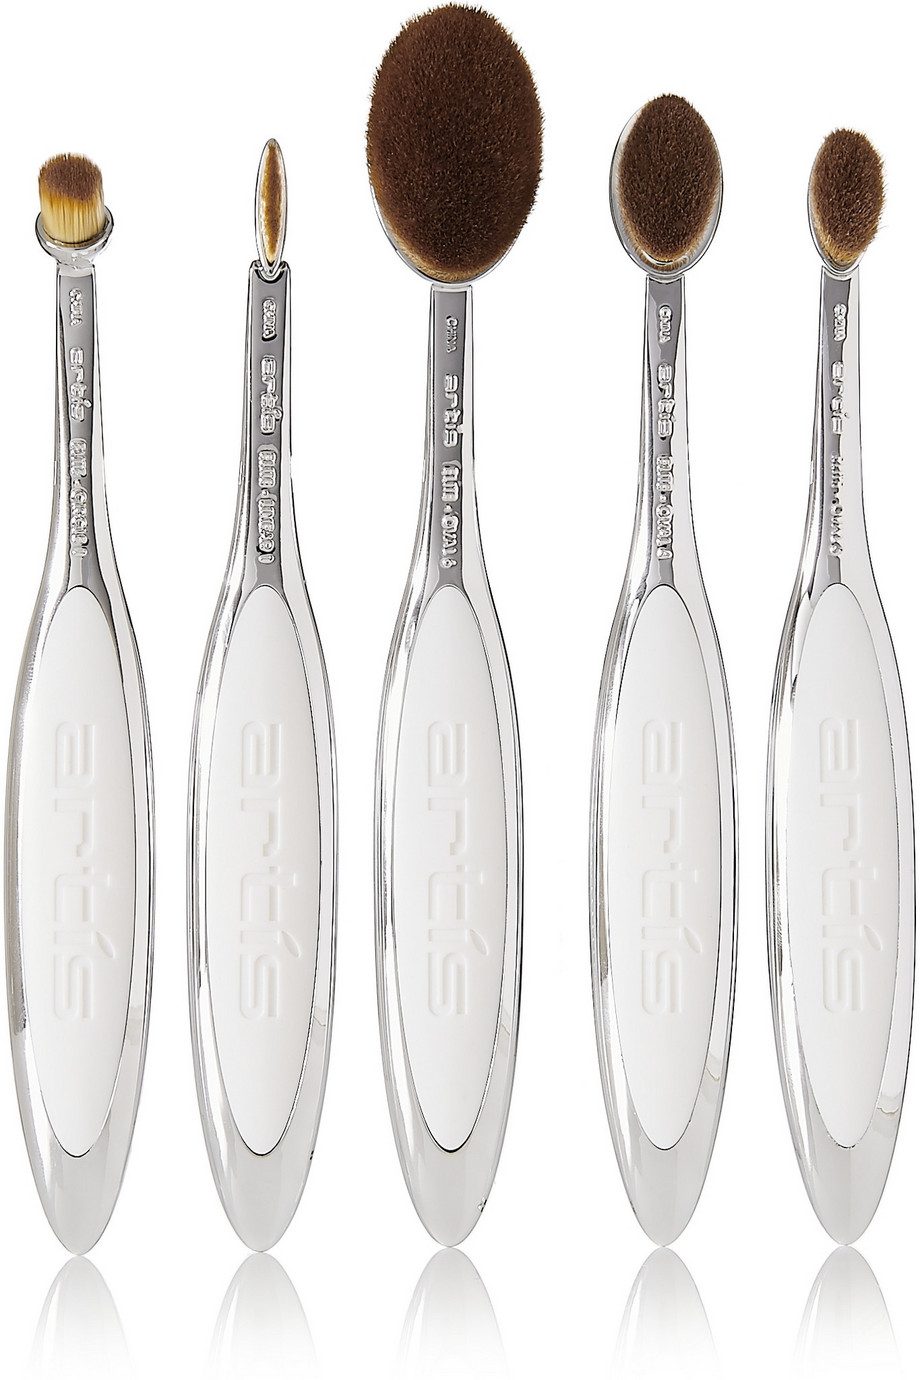 Elite Mirror 5 Brush Set, by Artis Brush